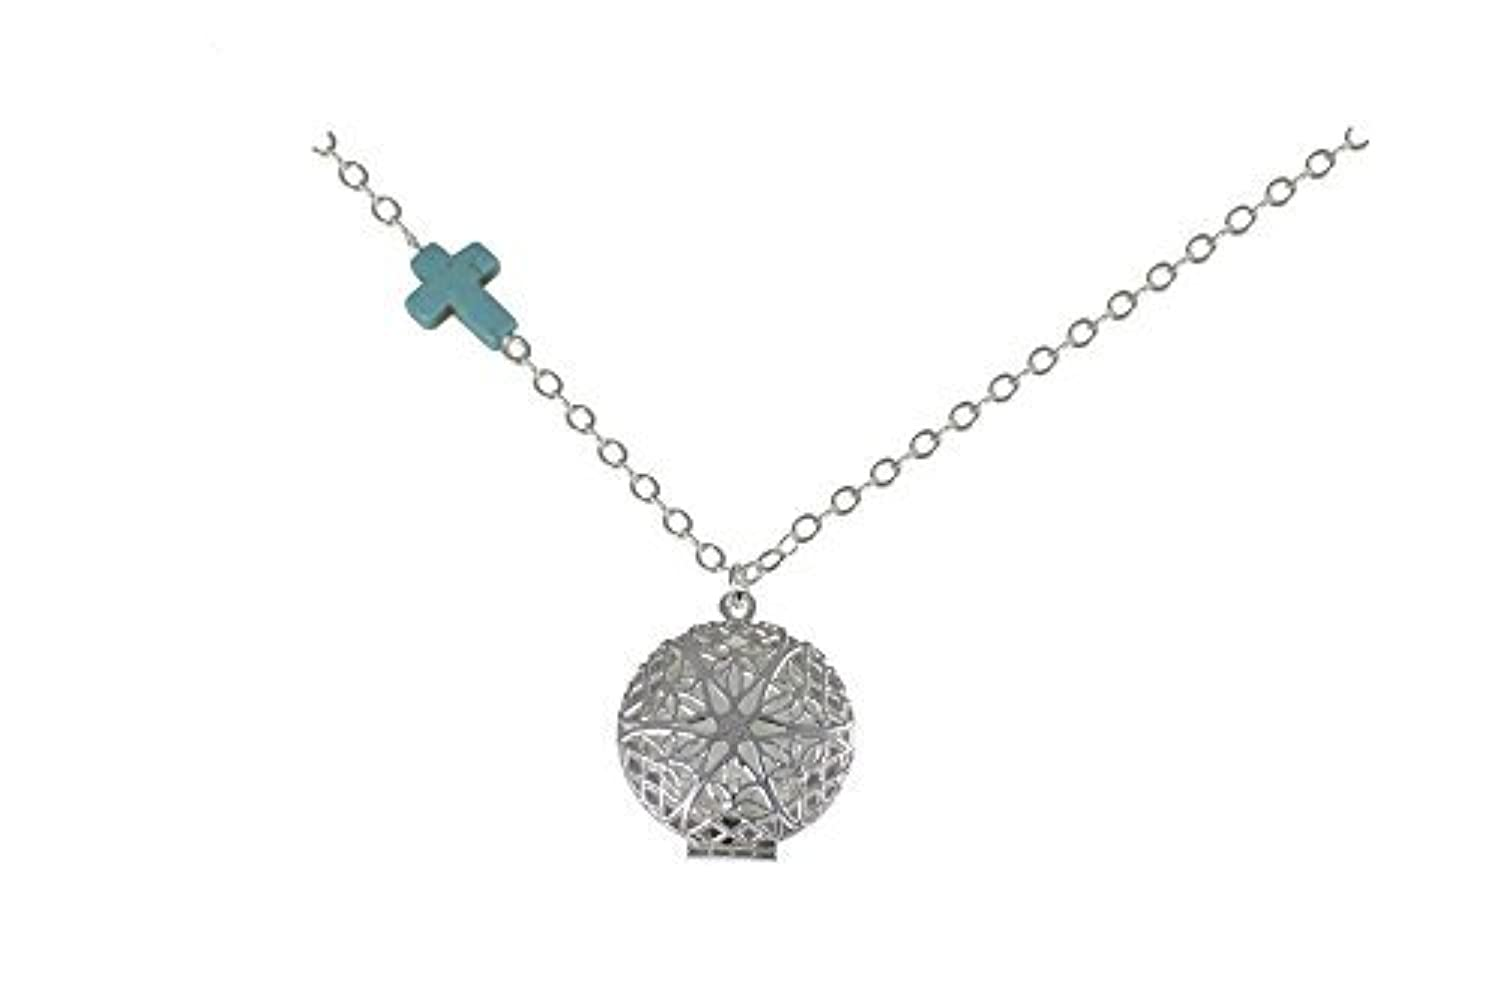 Turquoise-colored Cross Charm Silver-Tone Aromatherapy Necklace Essential Oil Diffuser Locket Pendant Jewelry...